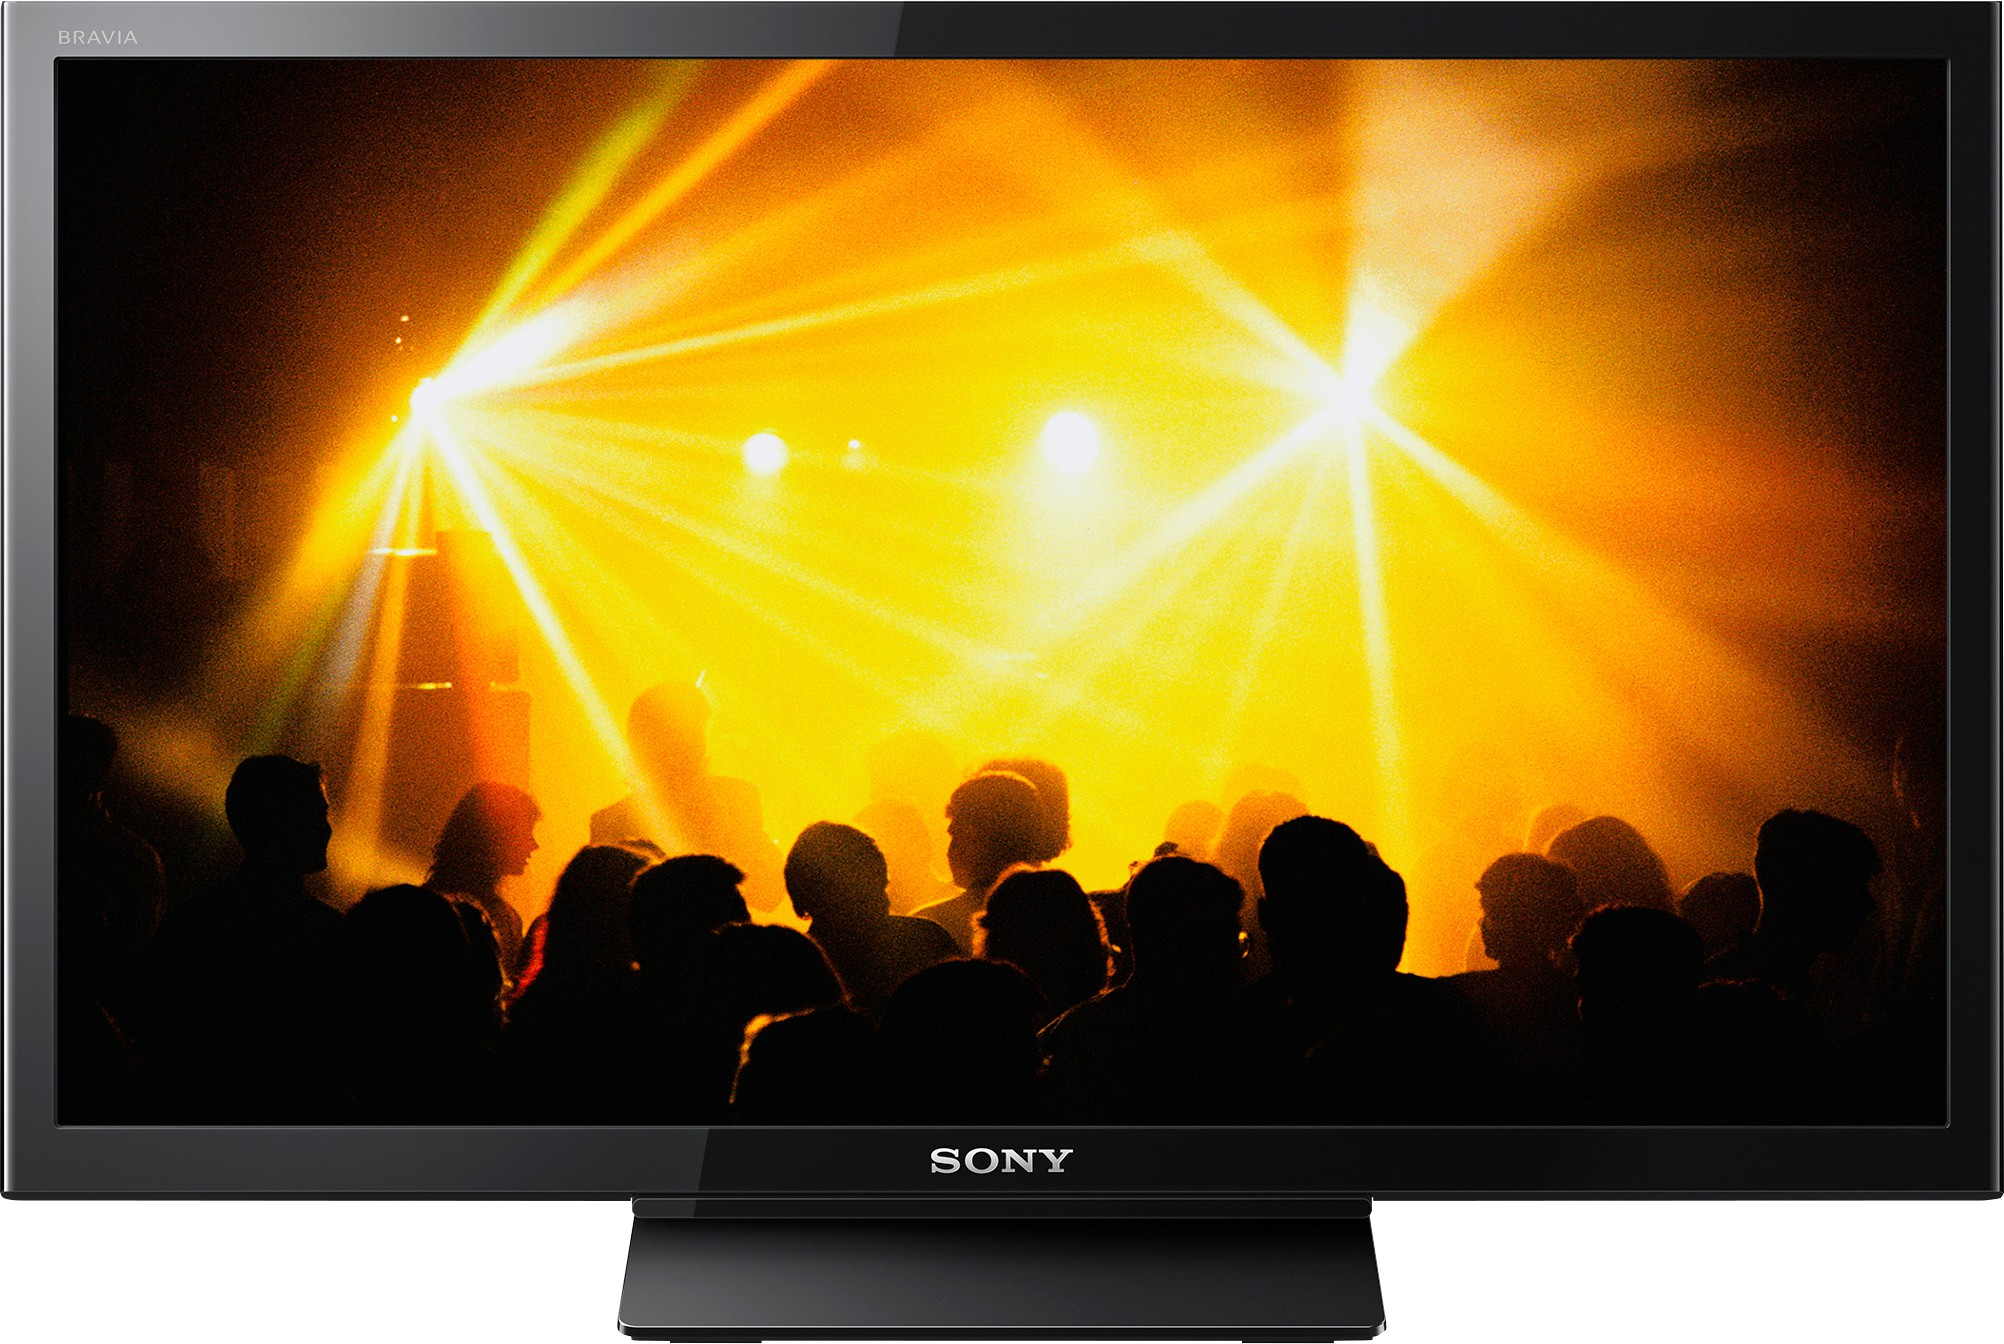 View Sony Bravia 59.9cm (24) WXGA LED TV(KLV-24P423D, 2 x HDMI, 1 x USB)  Price Online